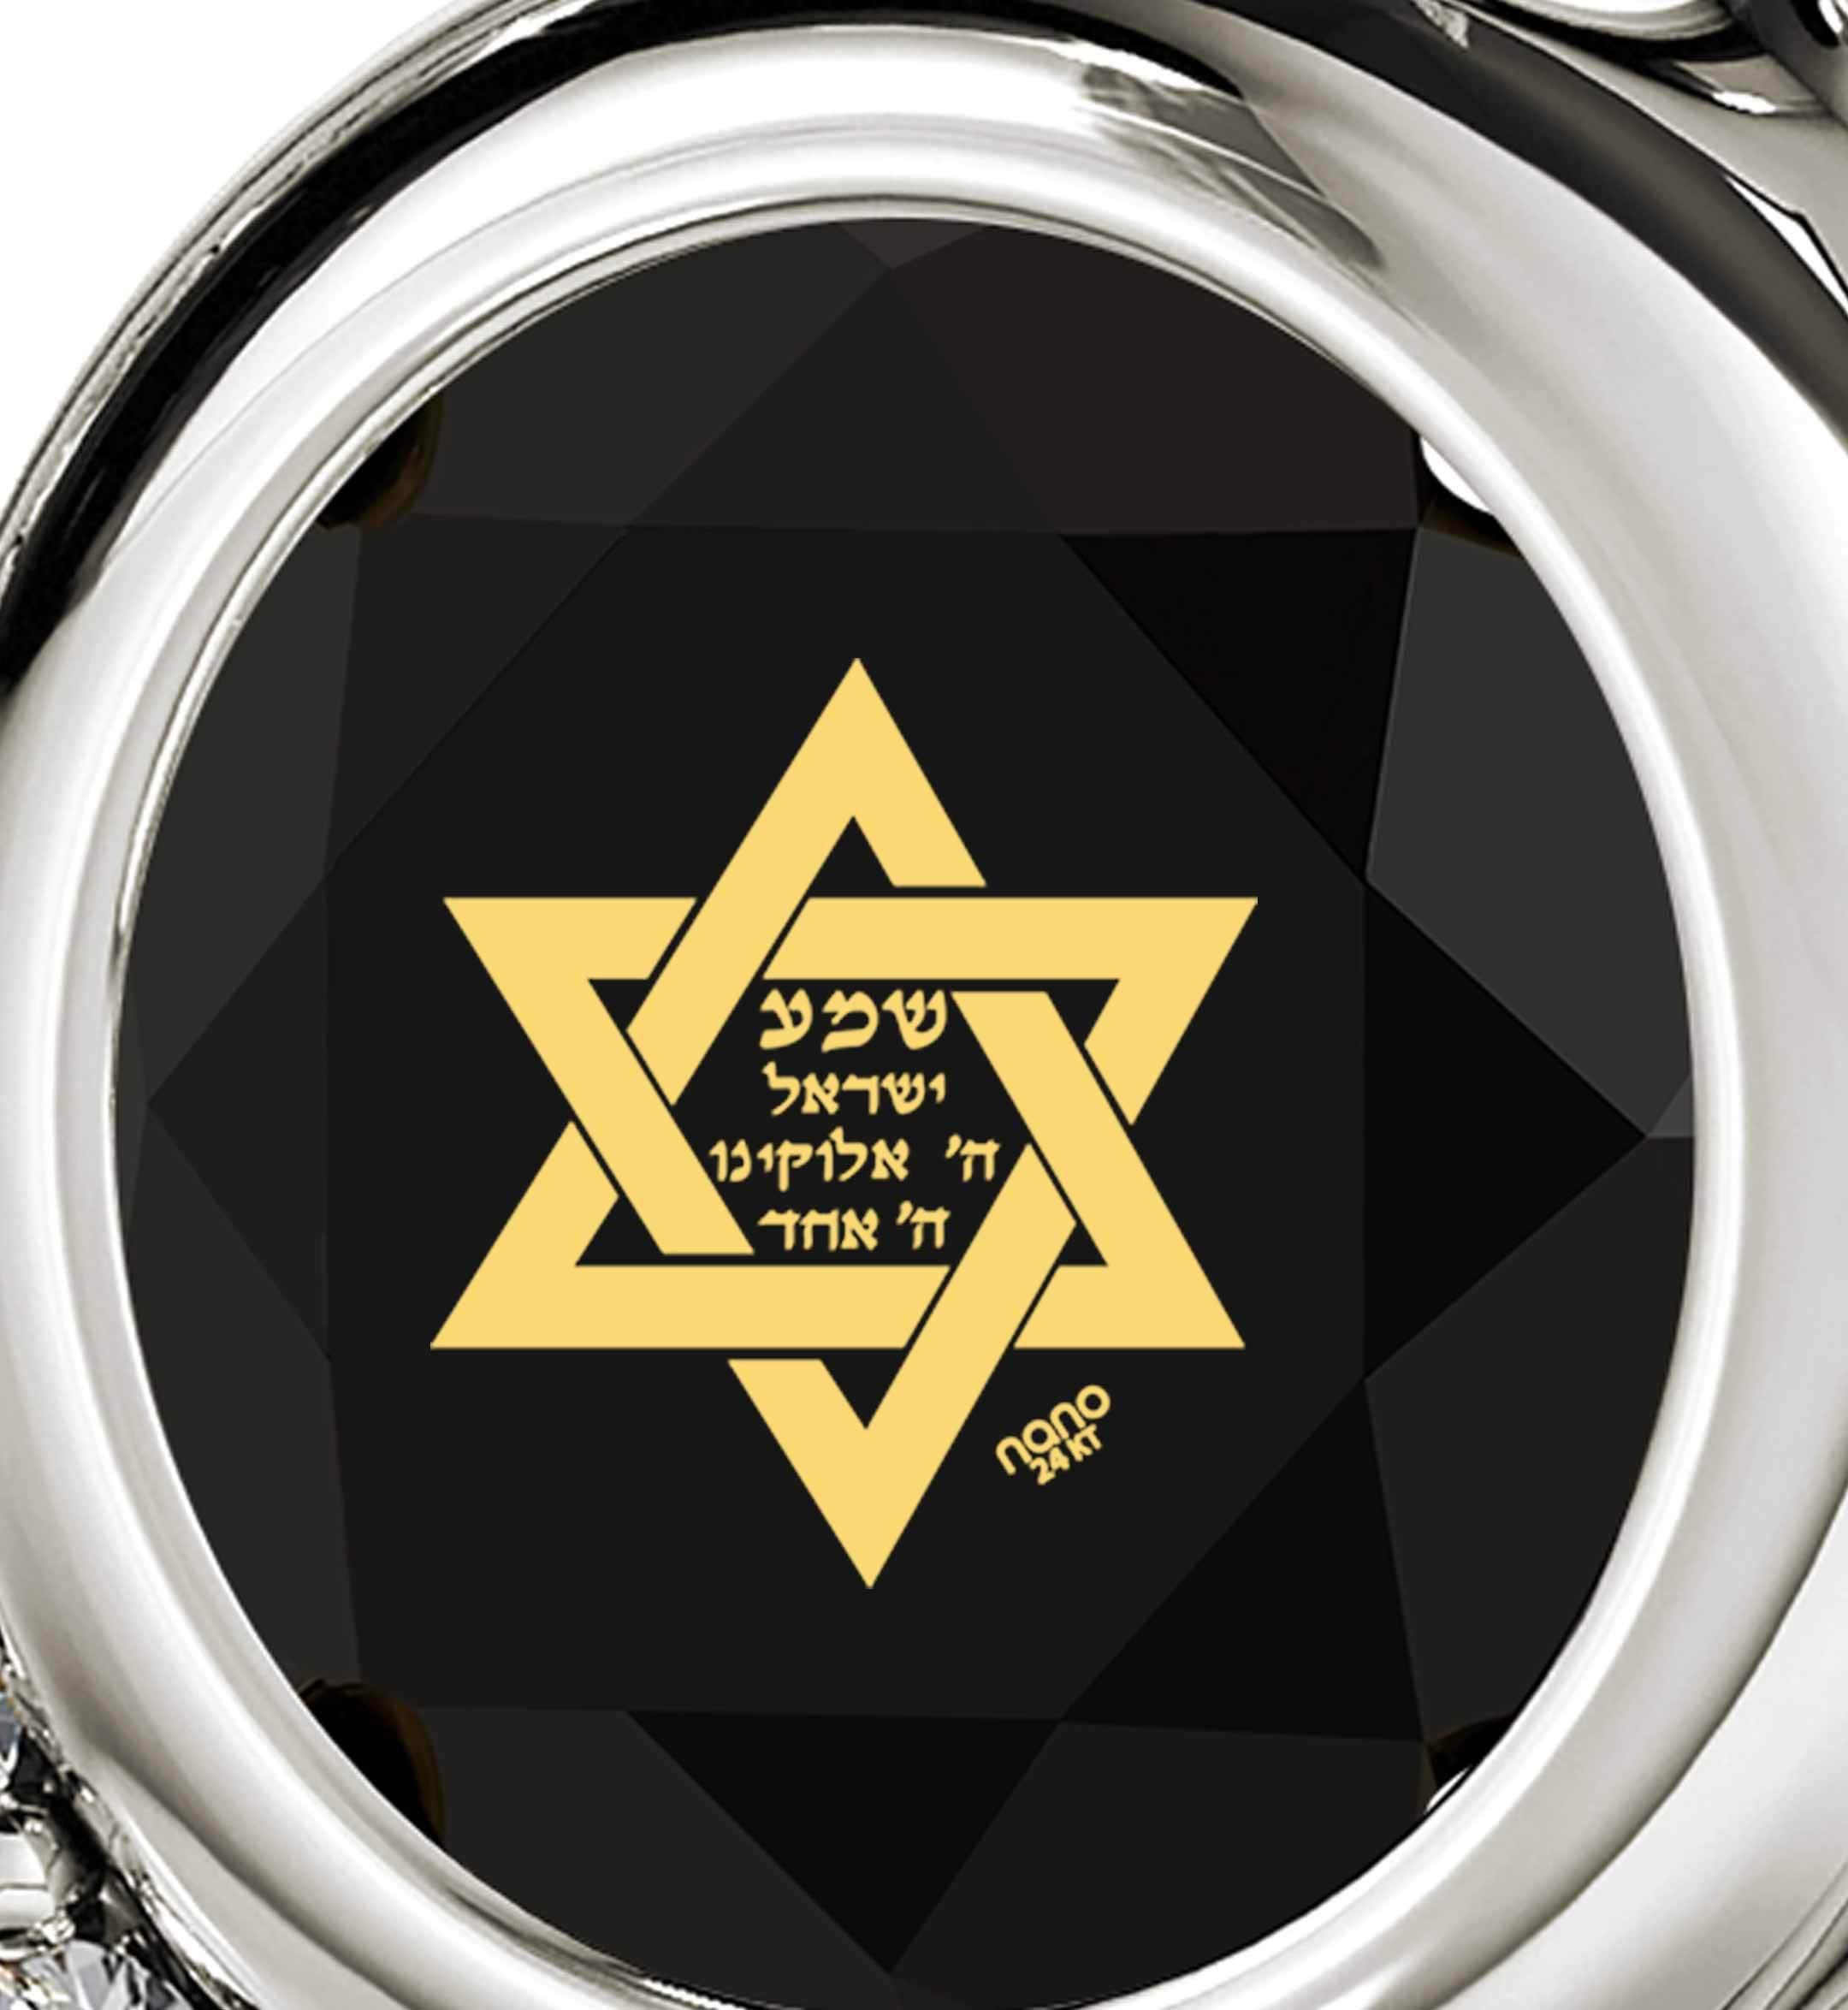 """Shema Yisrael"" Engraved in 24k, Israeli Jewelry with Black Onyx Pendant, Jewish Gifts"